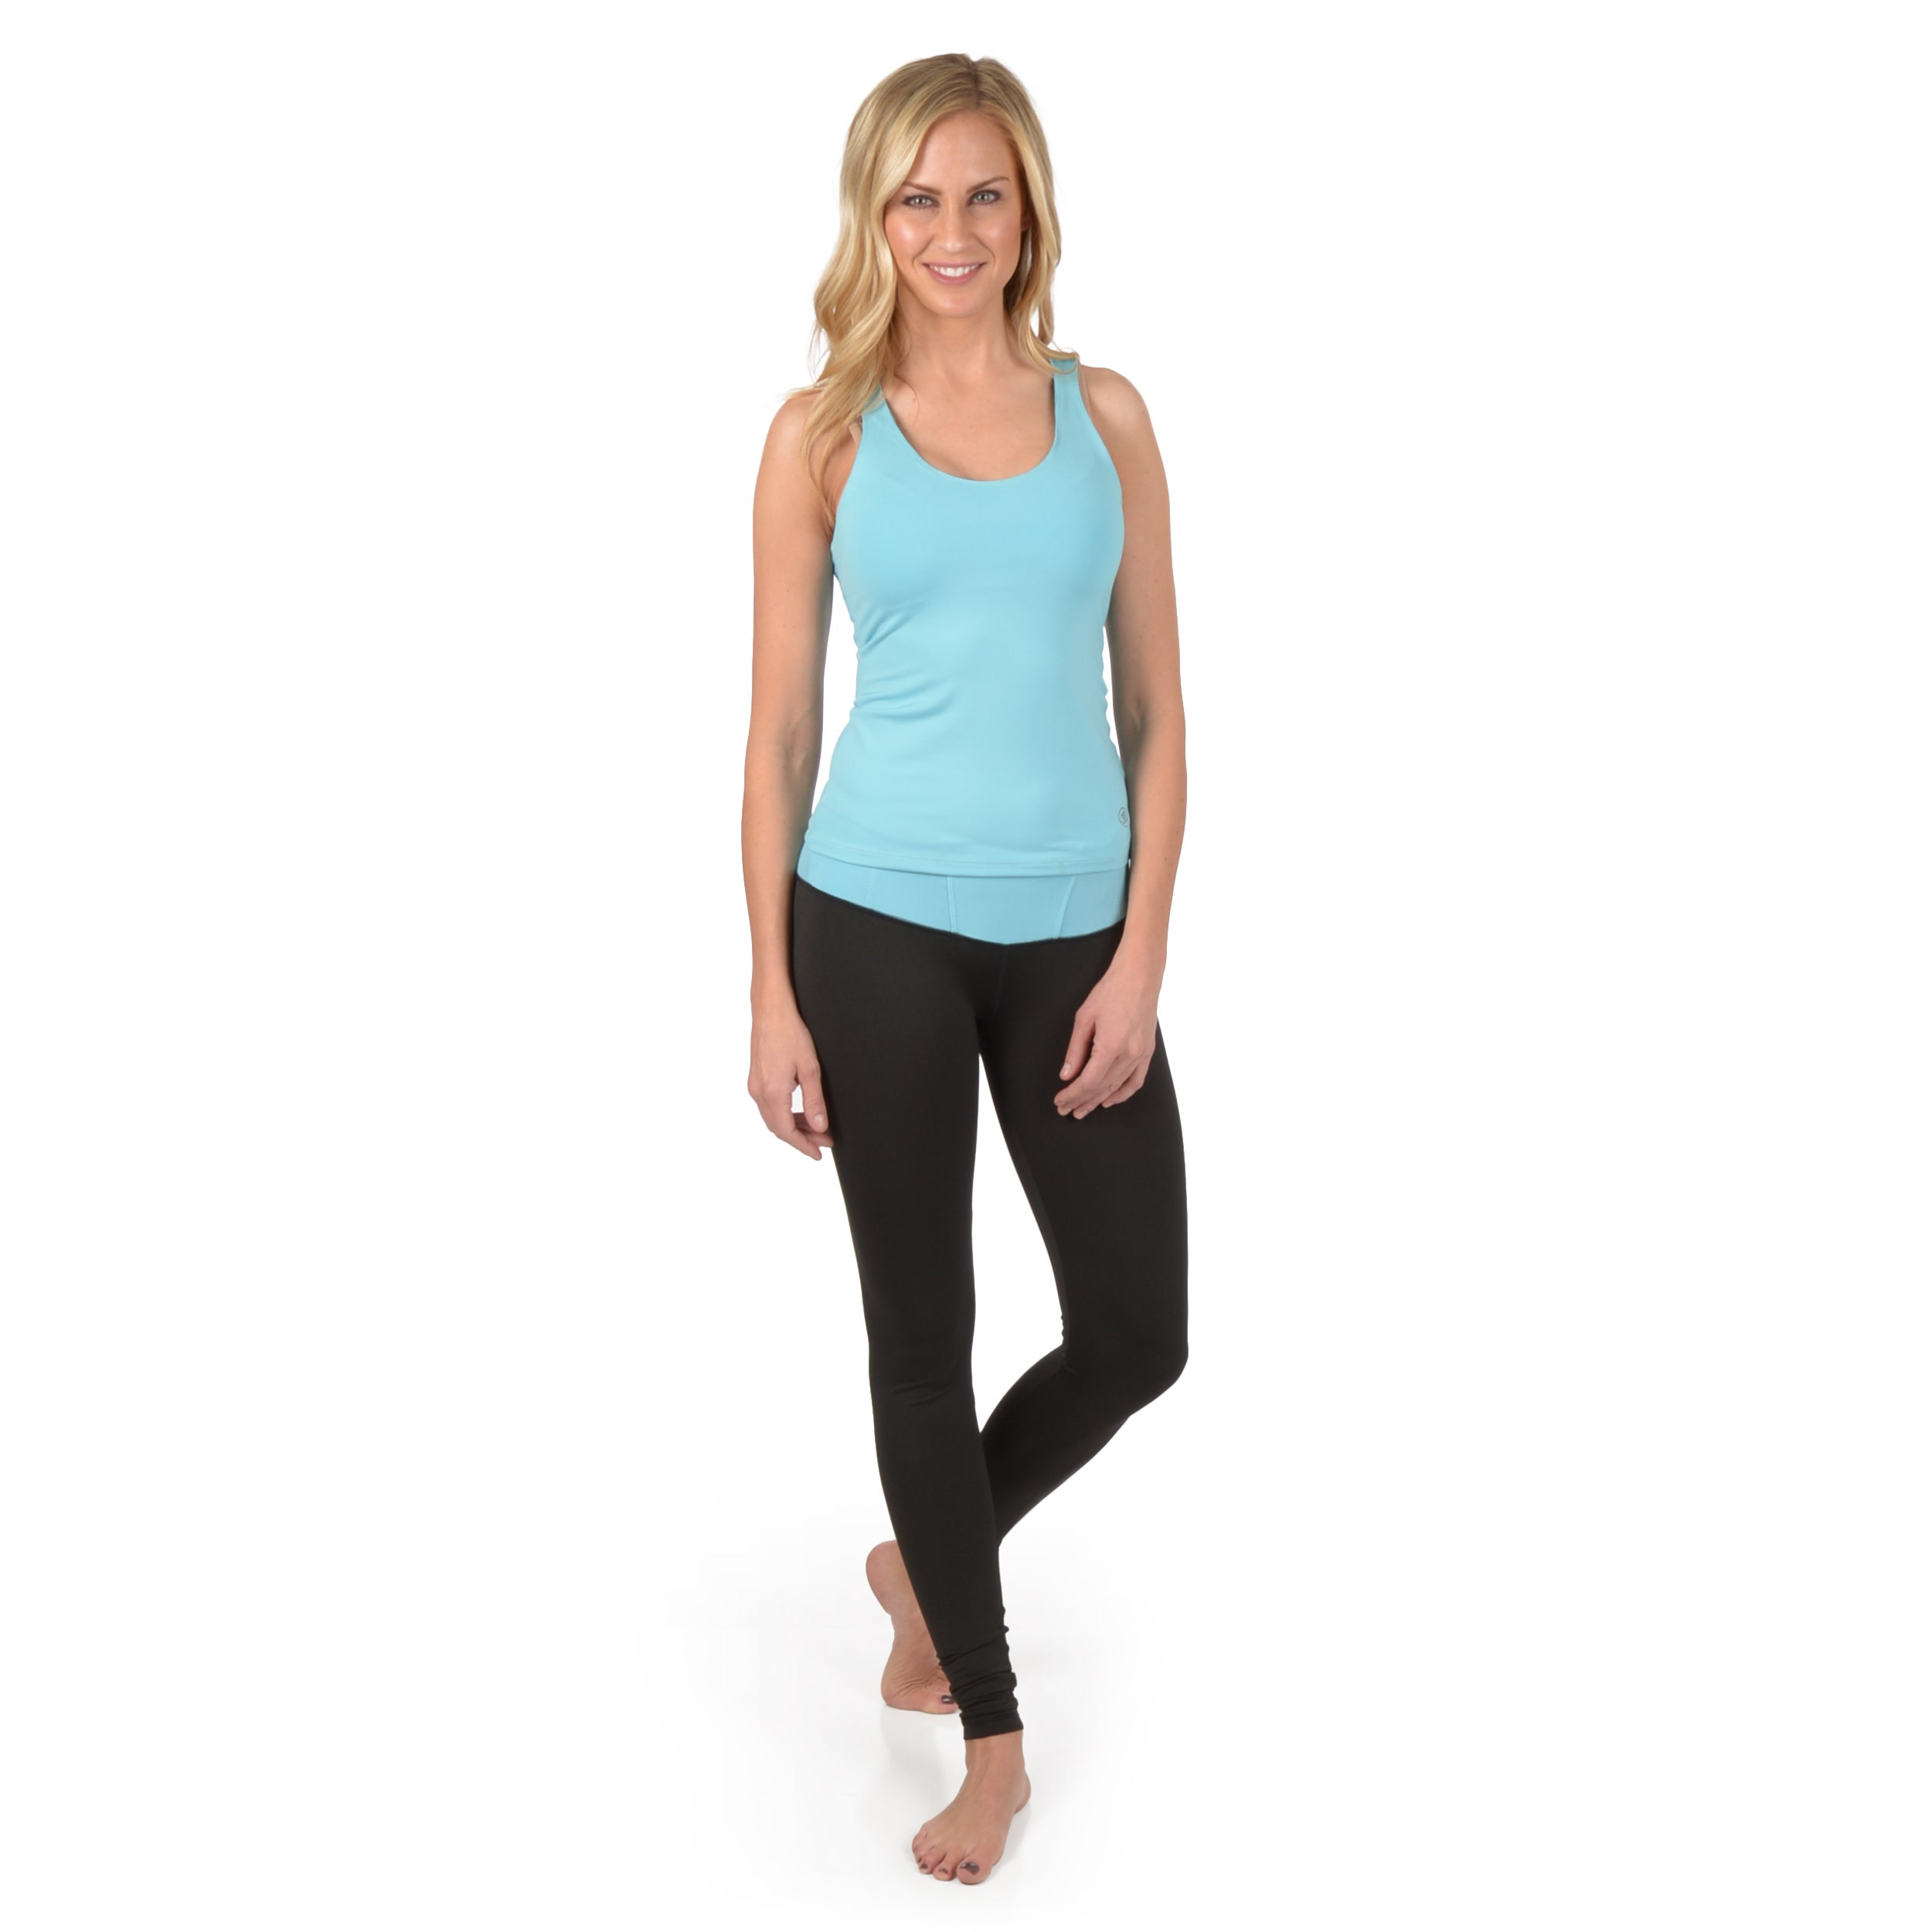 Journee Collection Journee Active Women's 2-pc Tank and Yoga Pant Set